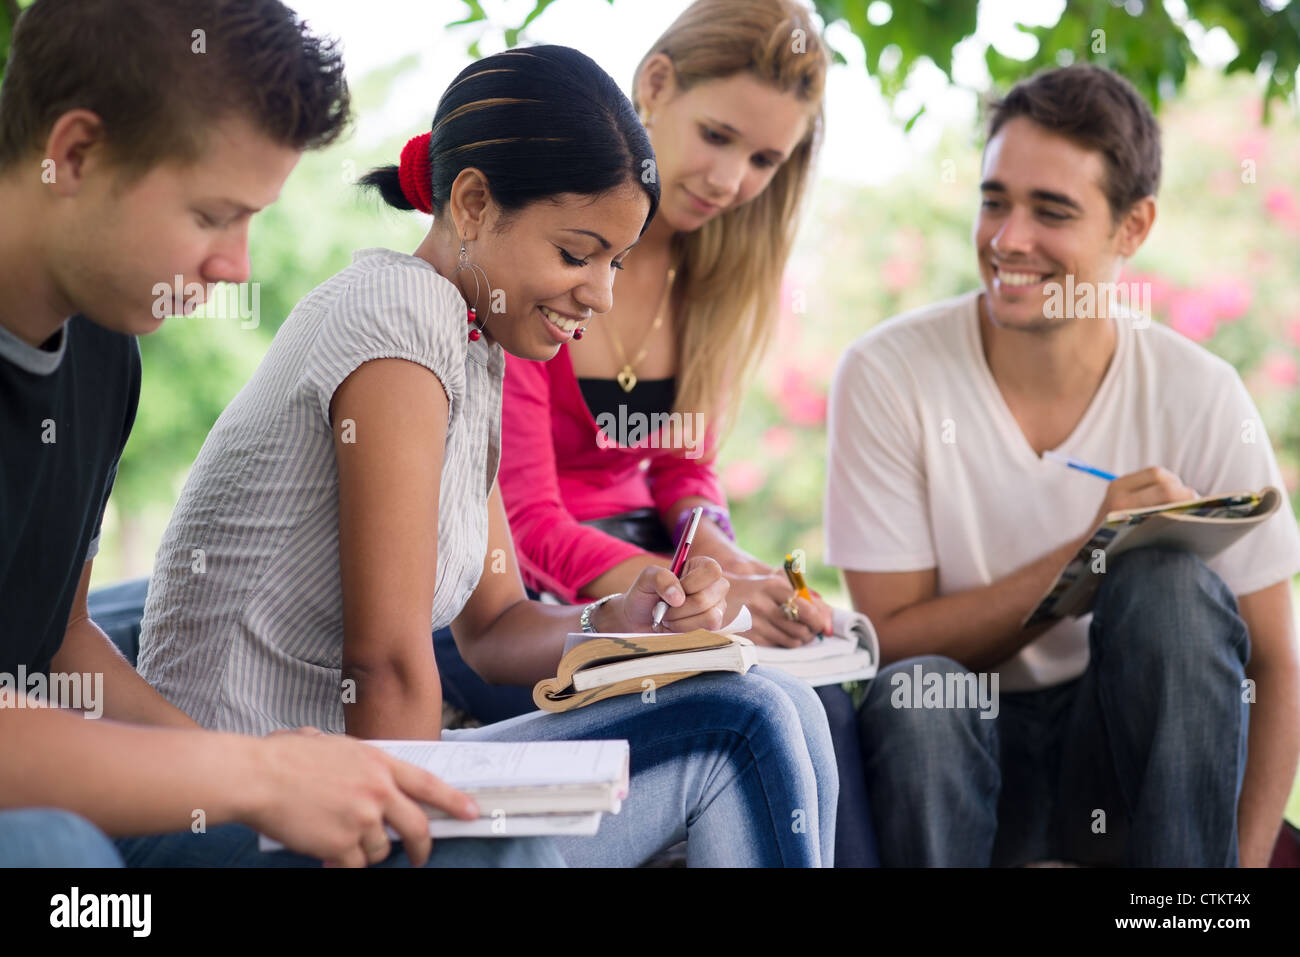 Friends and education, group of university students studying, reviewing homework and preparing test - Stock Image